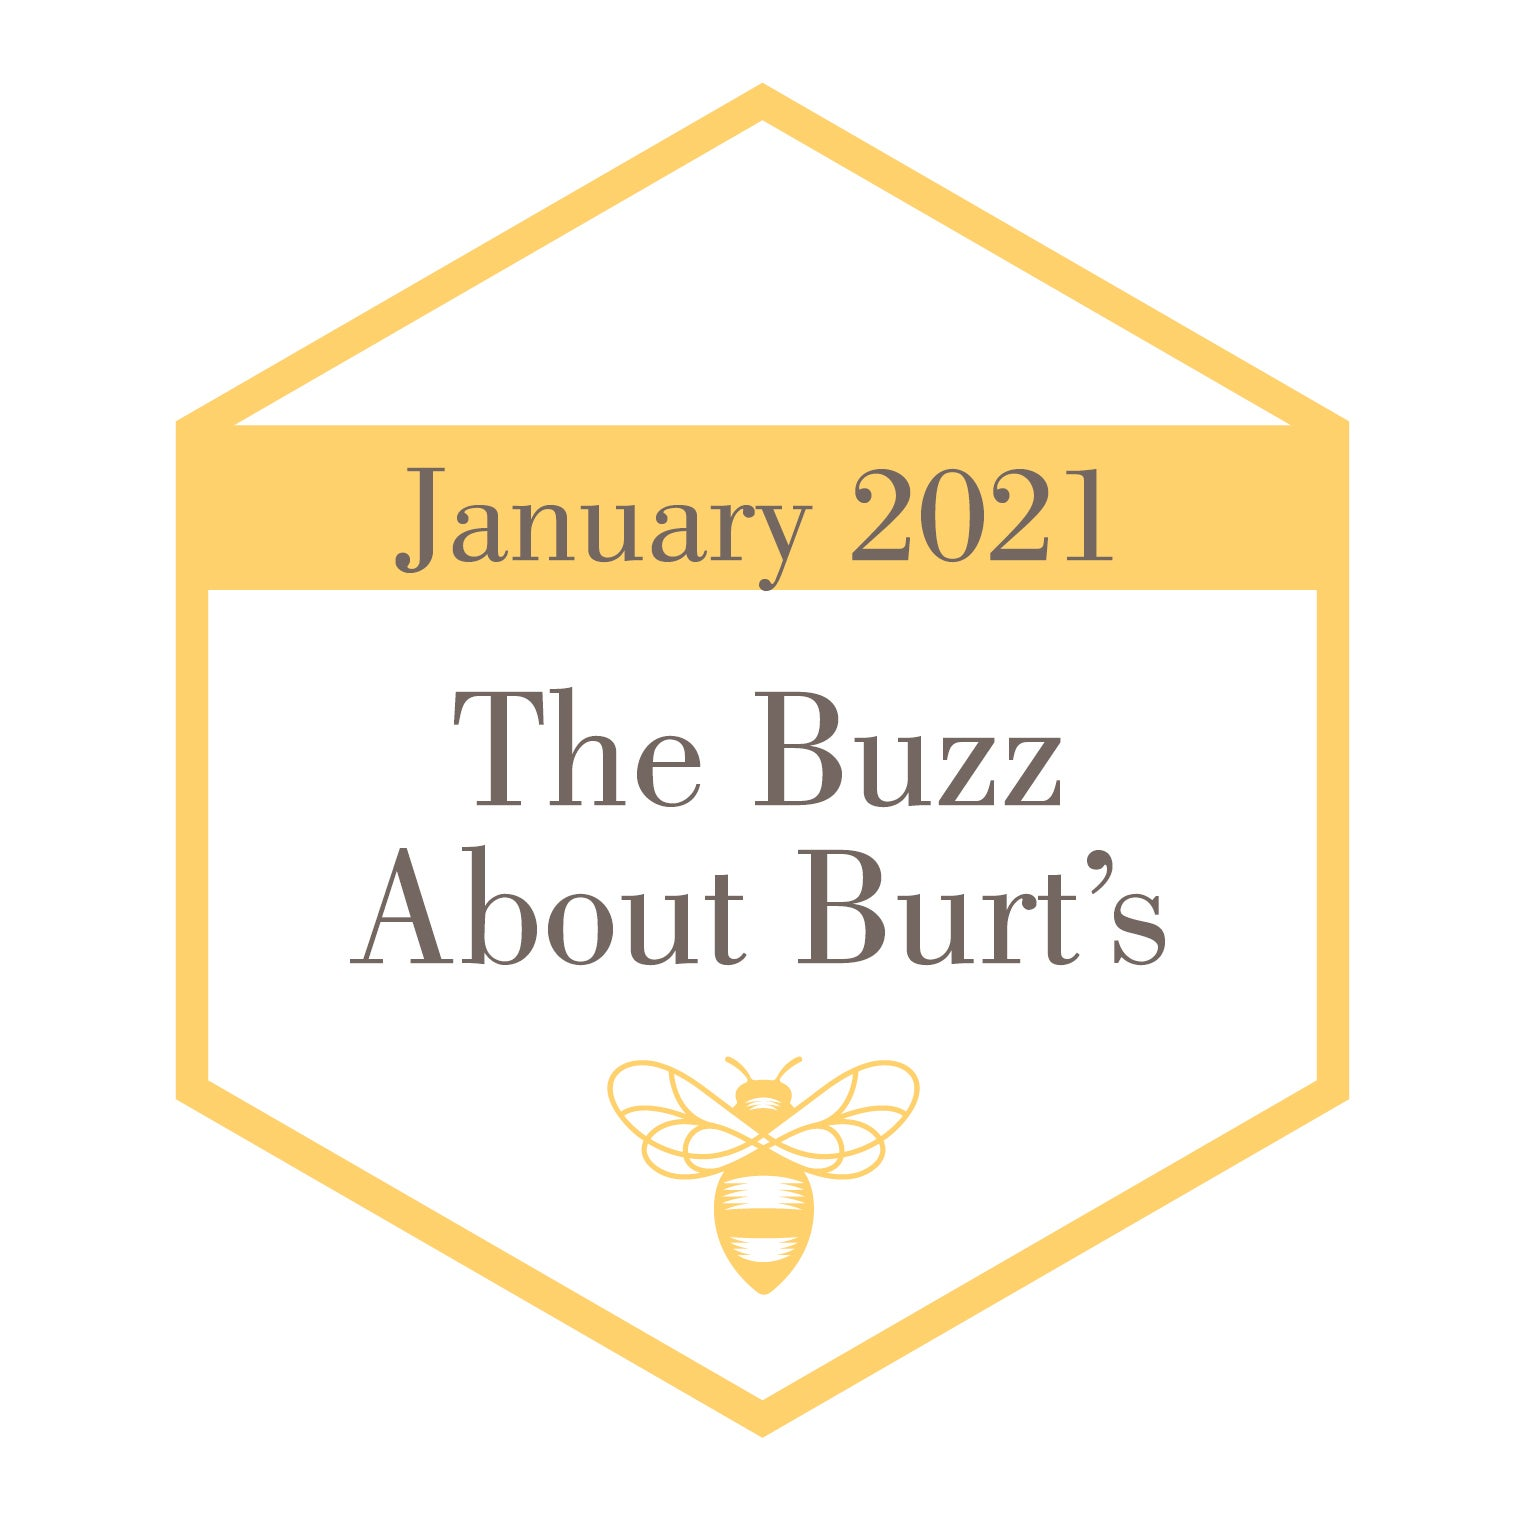 The Buzz About Burt's - January